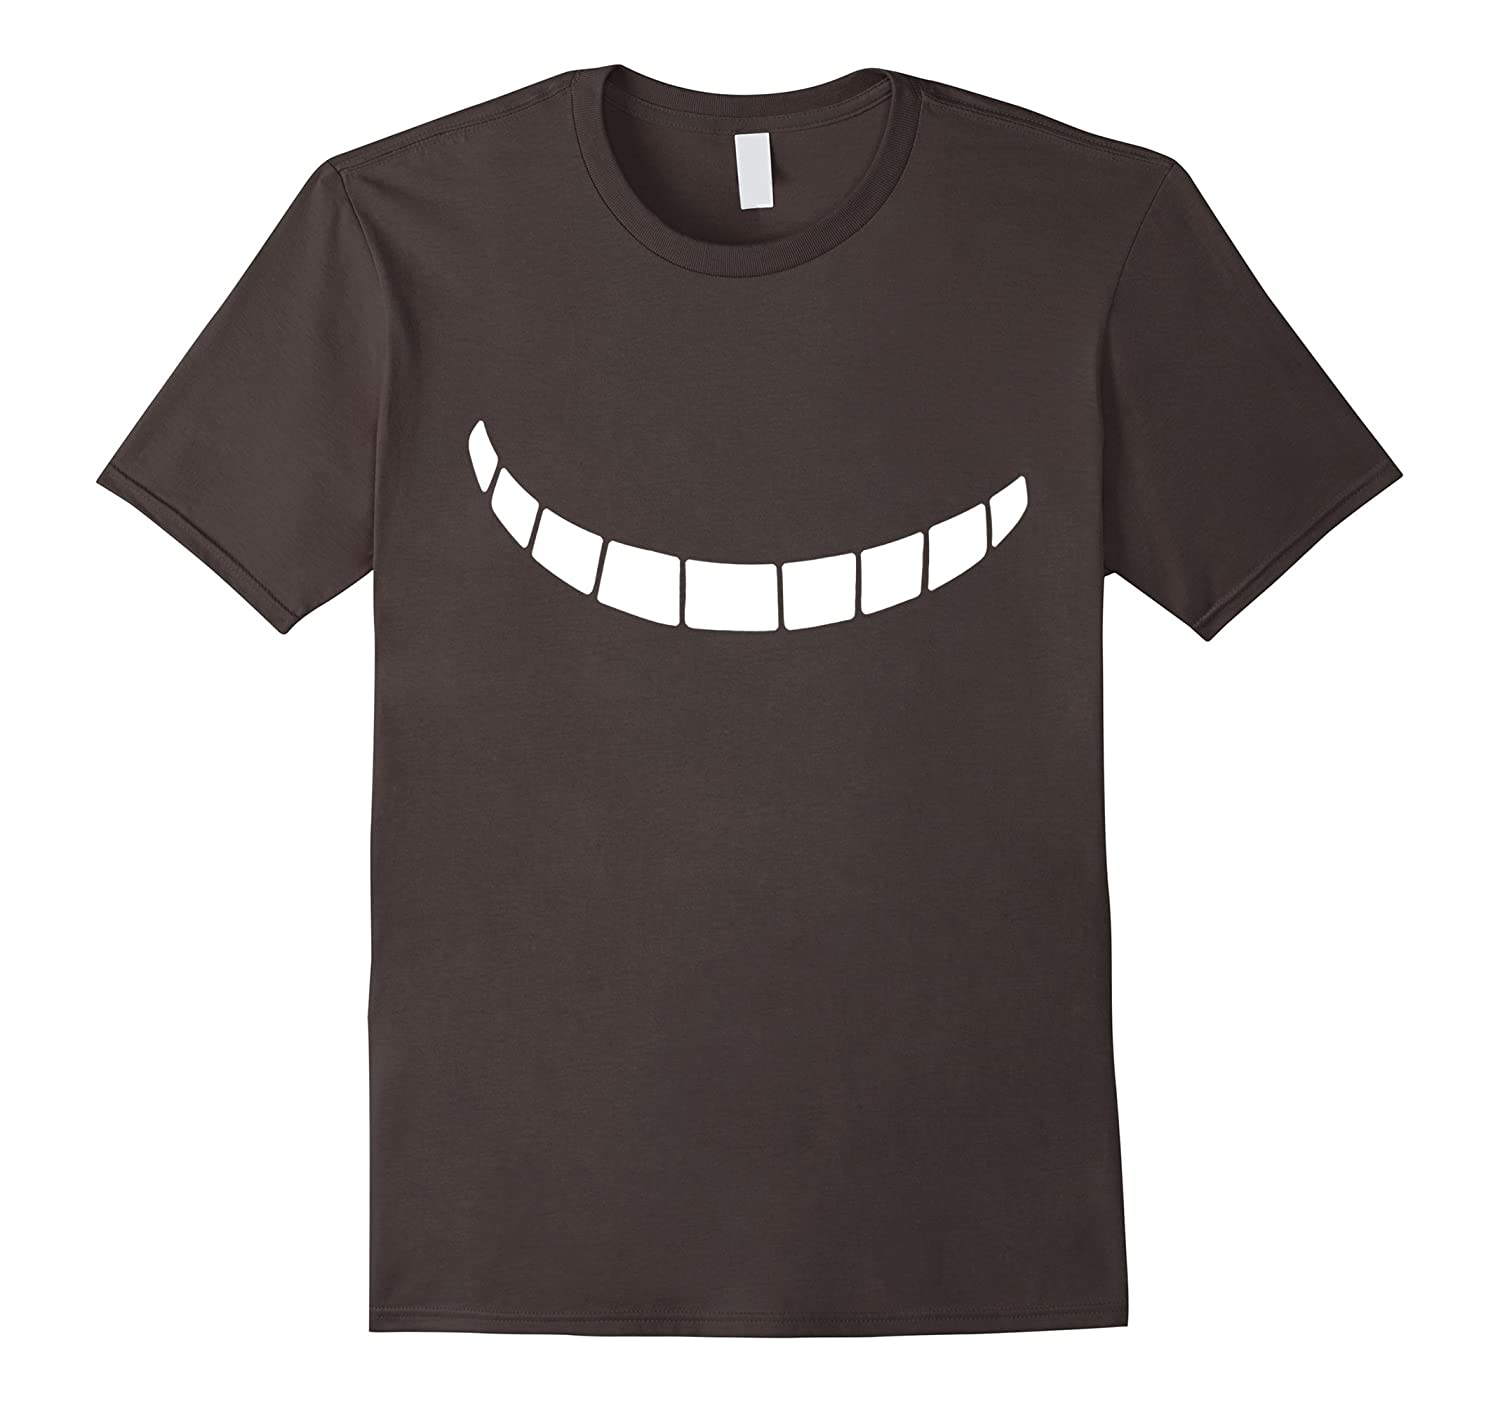 Alice in Wonderland Mysterious Grin Cheshire Cat Smile Tee-T-Shirt